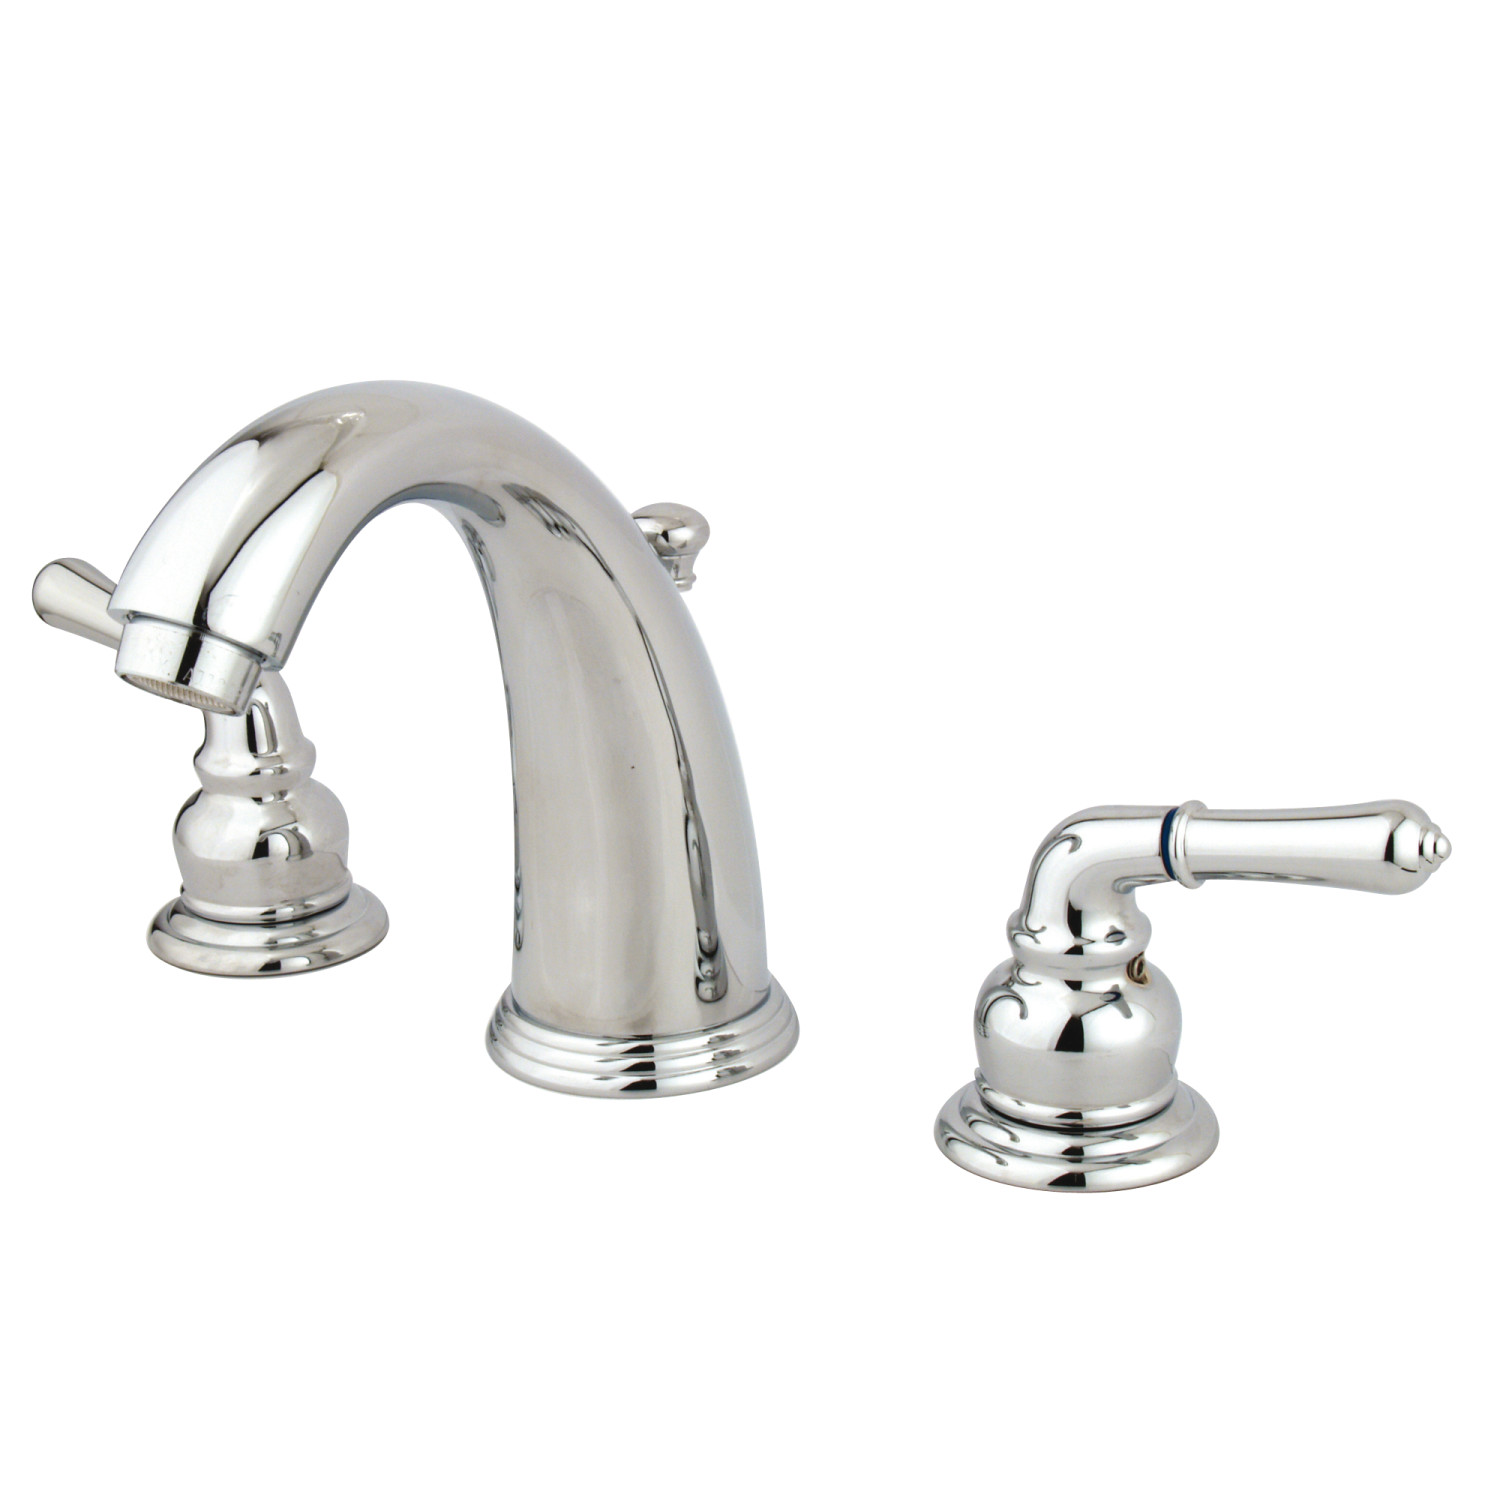 Traditional Two-Handle 3-Hole Deck Mounted Widespread Bathroom Faucet with Plastic Pop-Up Polished Chrome